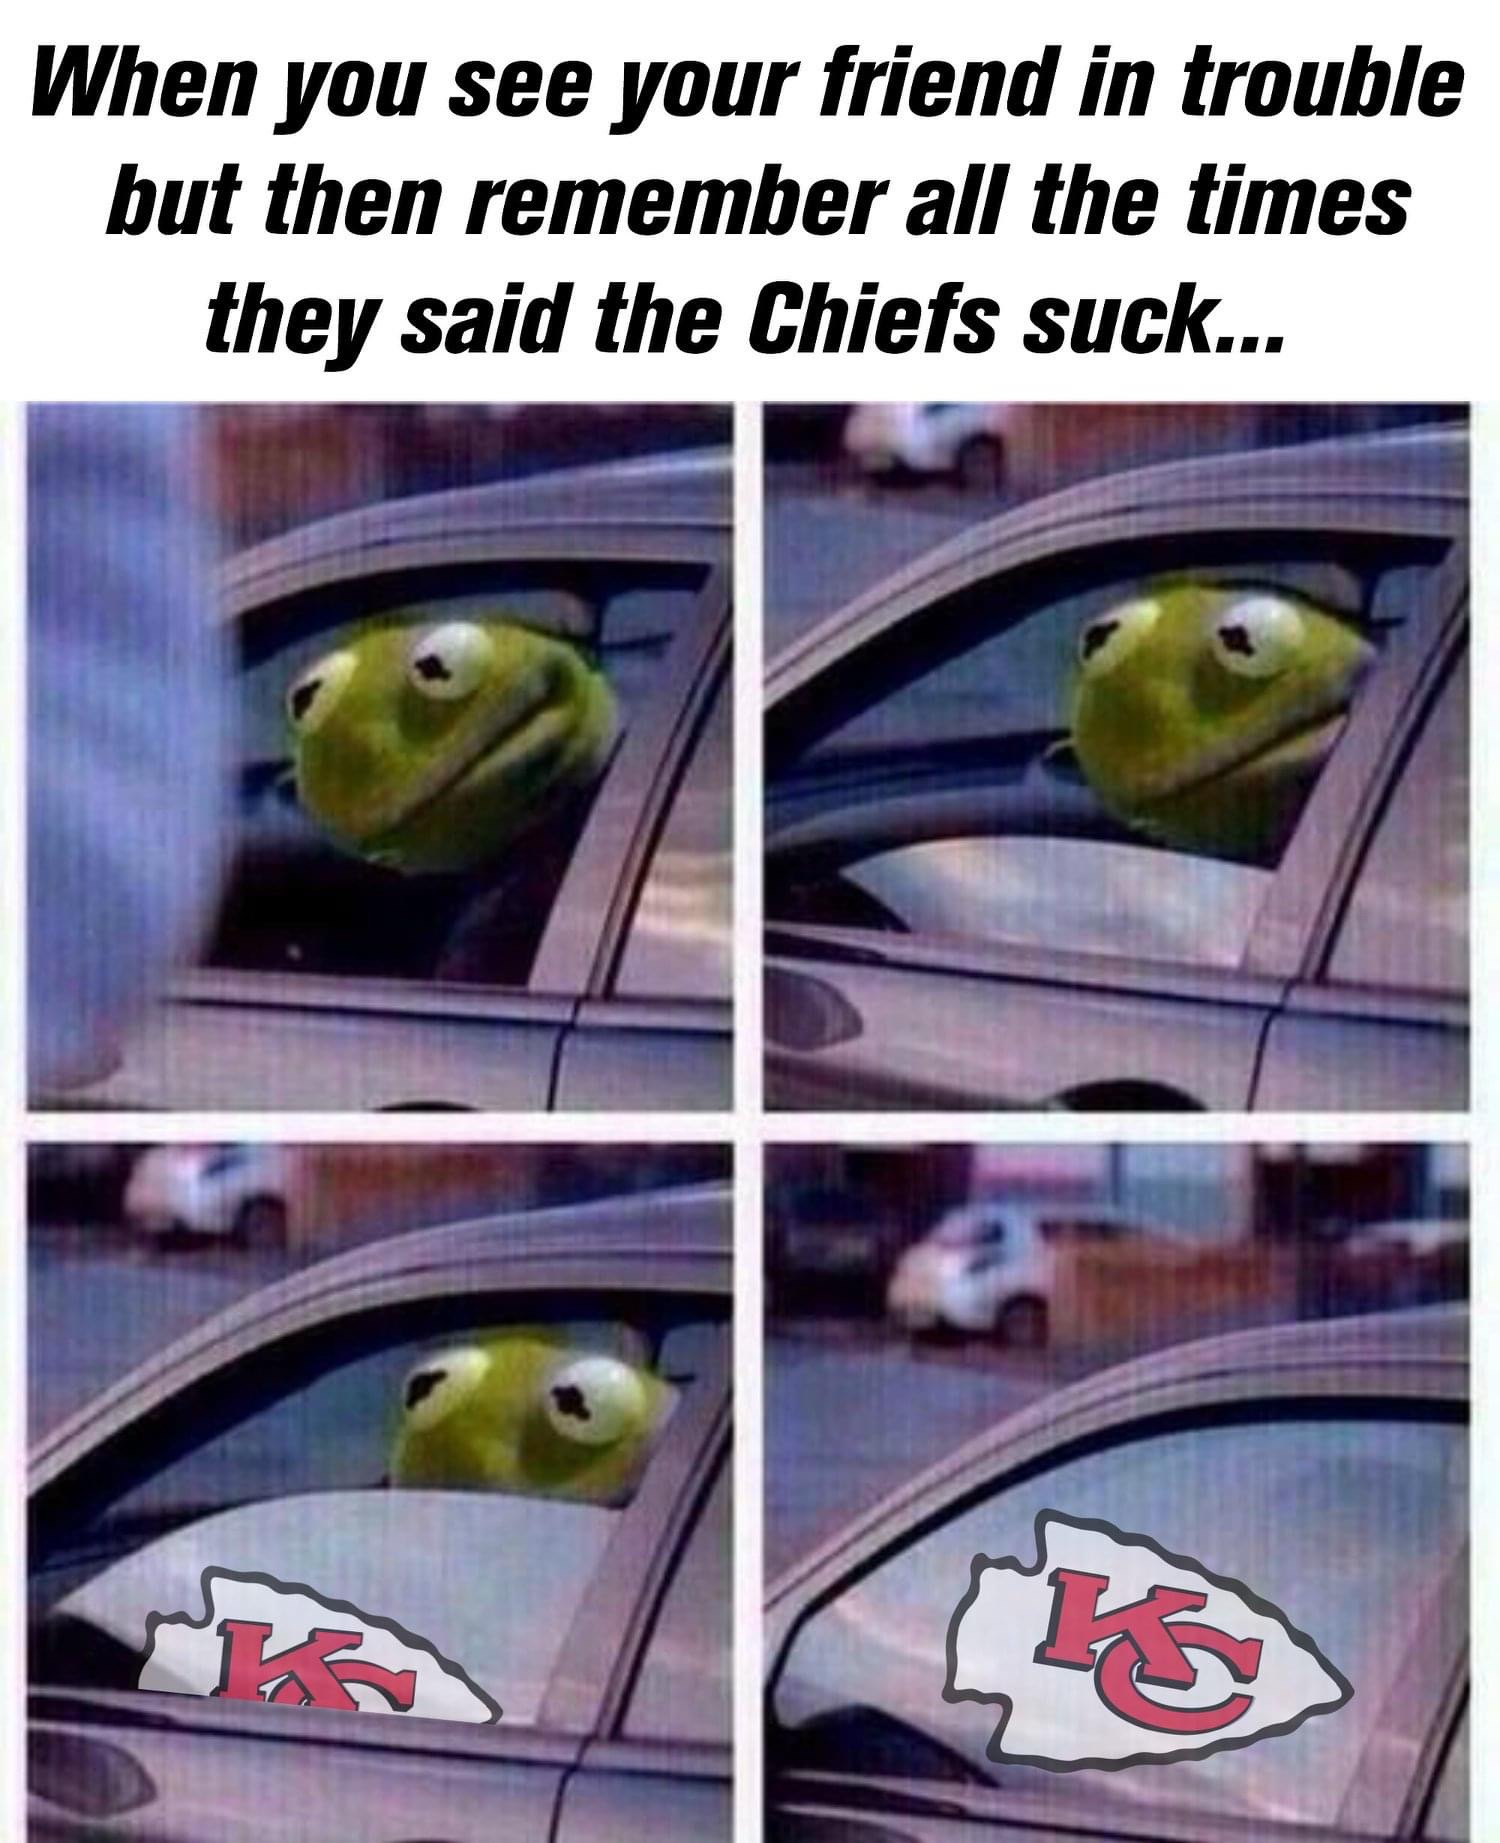 When you see your friend in trouble but then remember all the times they said the Chiefs suck Kermit the Frog meme